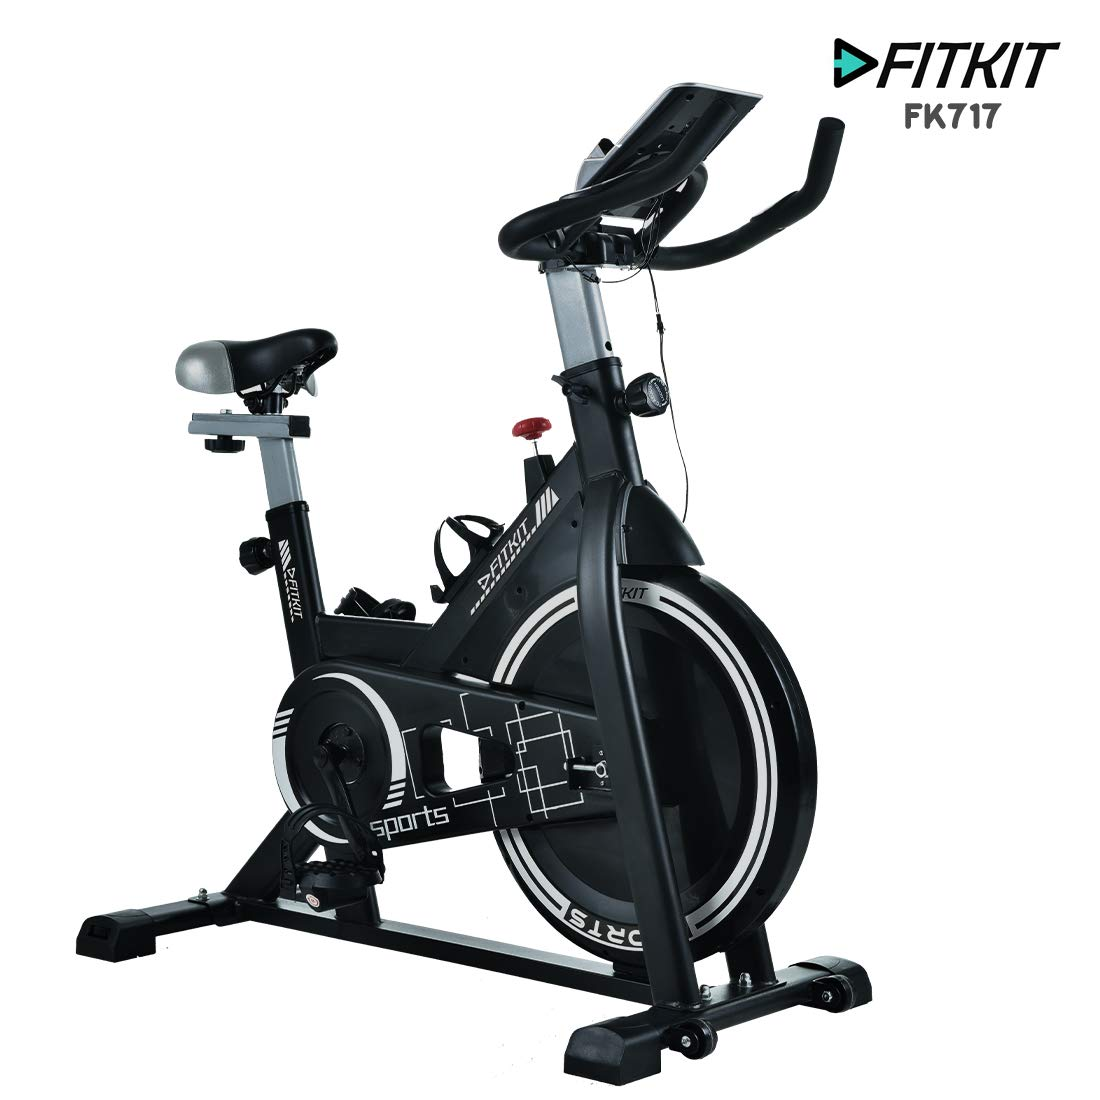 Fitkit FK717 Flywheel Spinner Exercise Bike